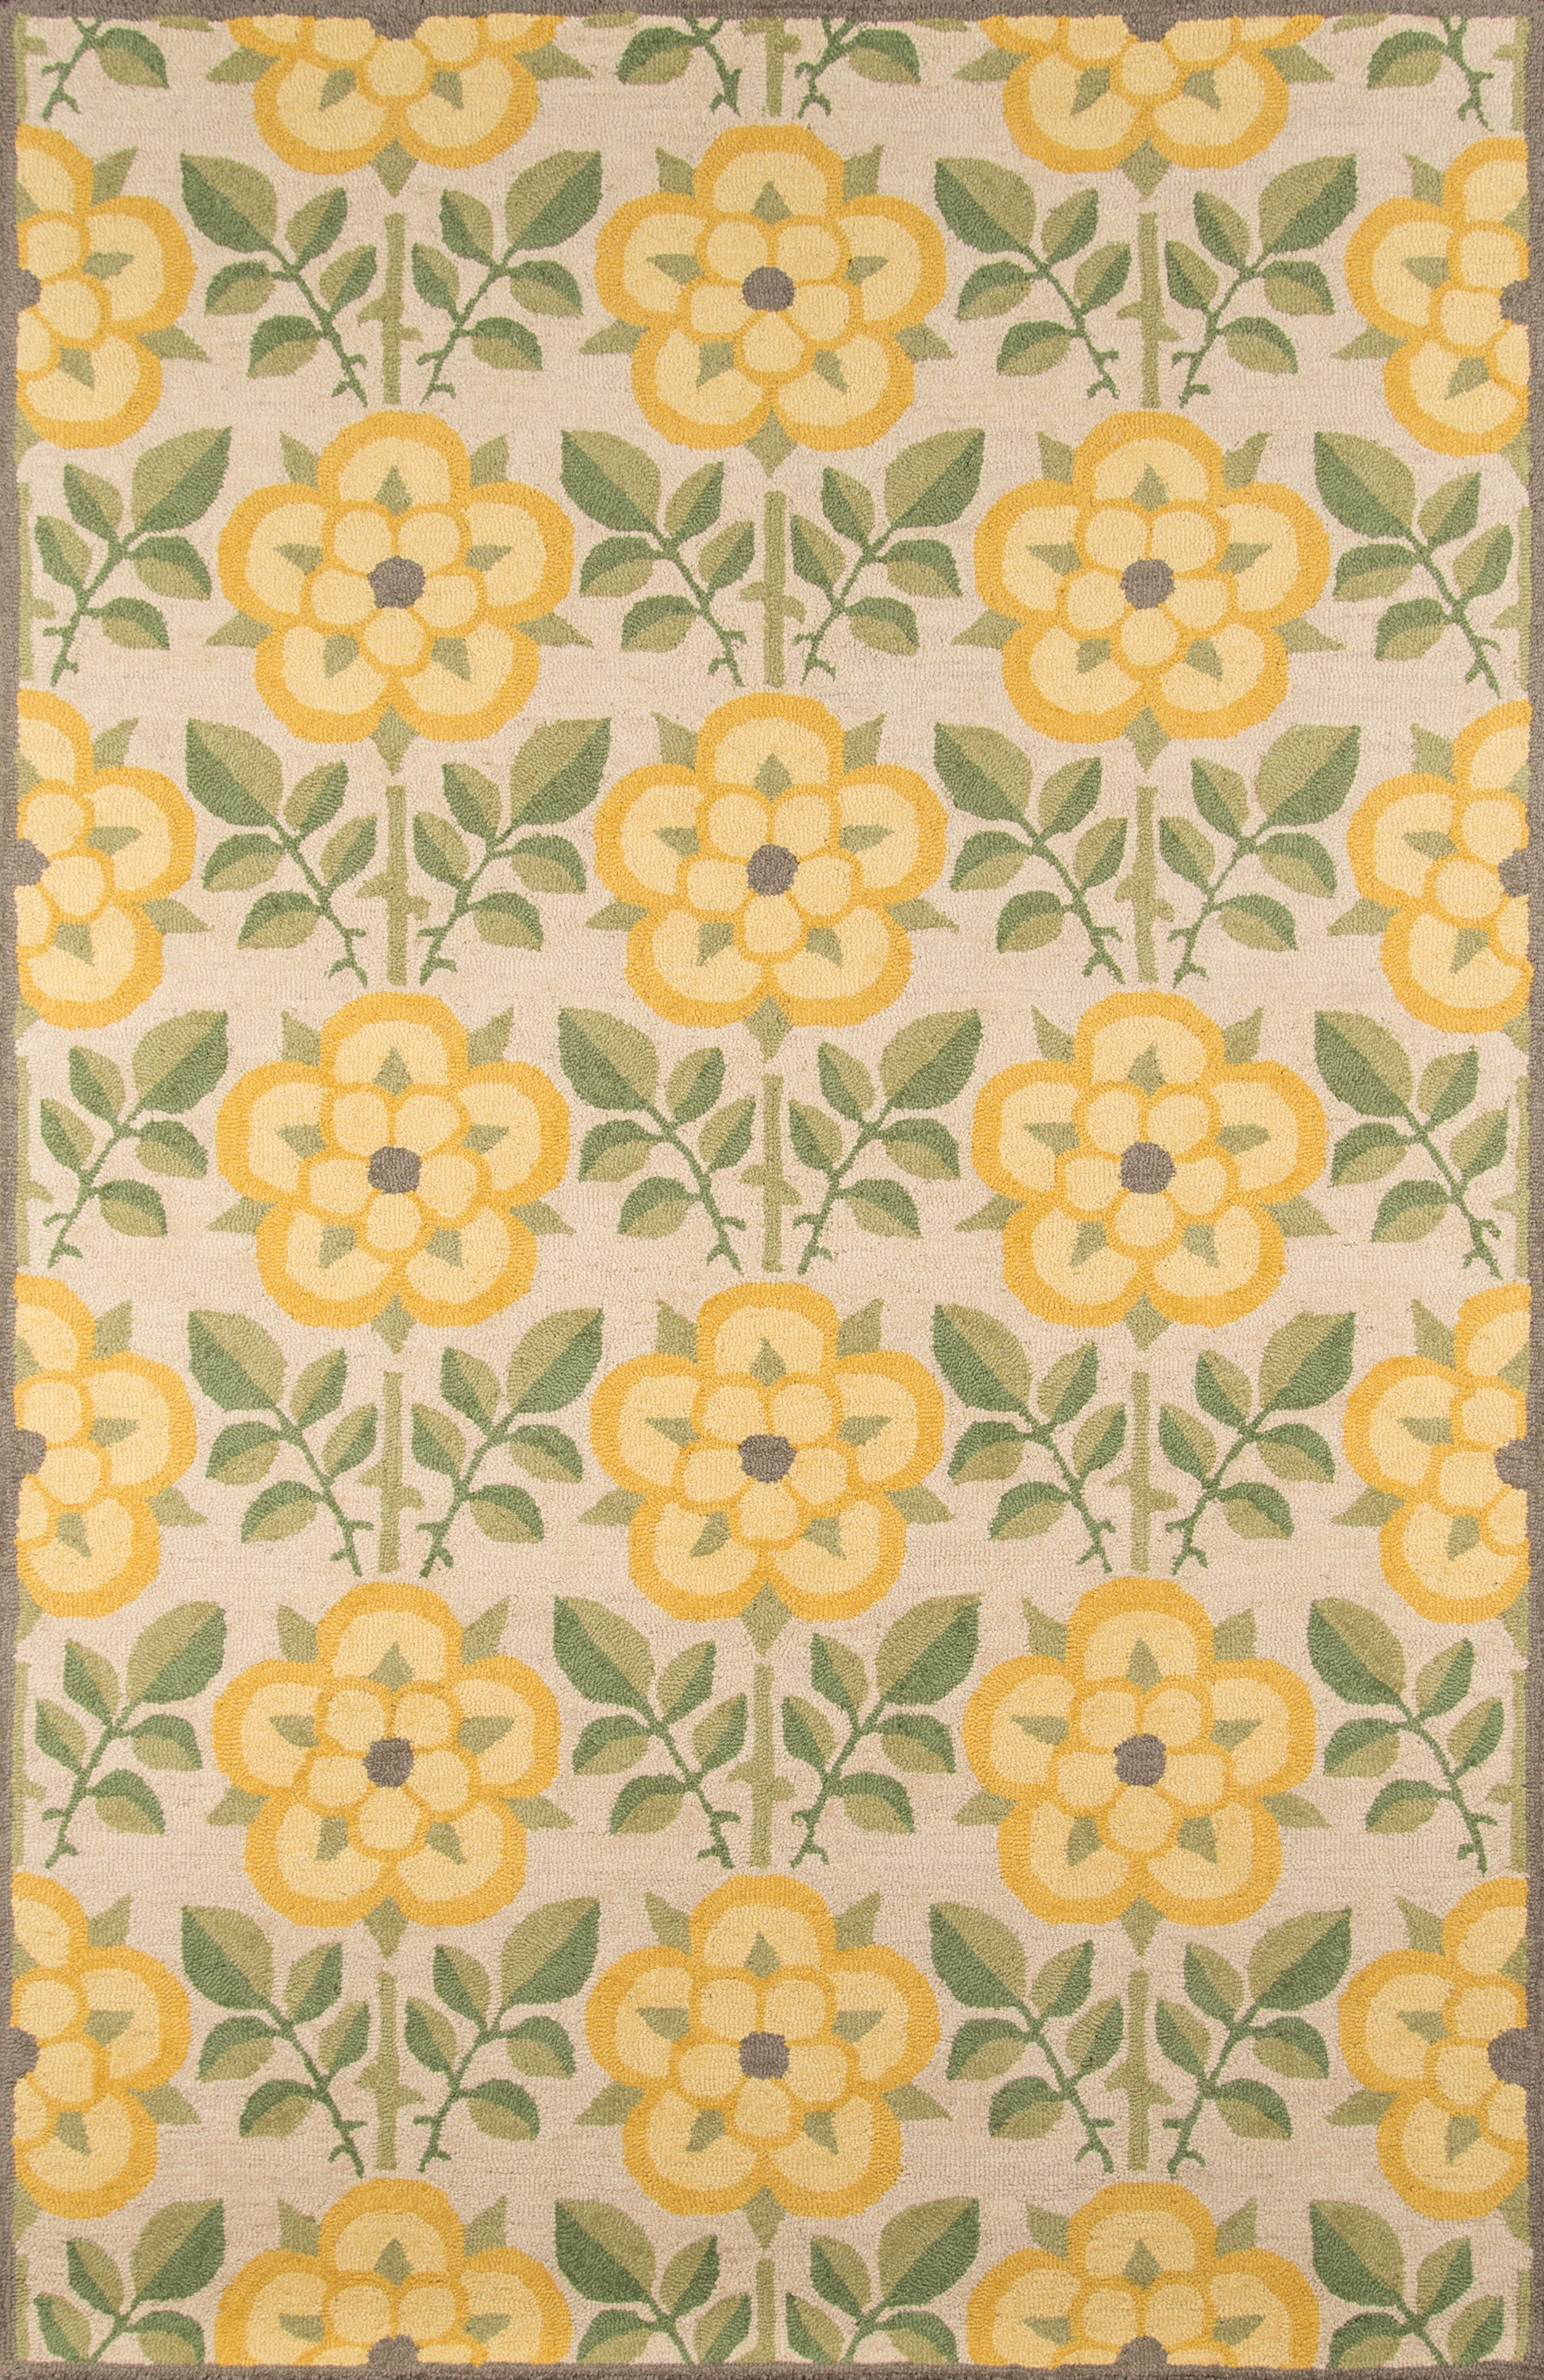 Rectangle 2x3 Yellow Floral Hand Tufted Wool Contemporary recommended for Kitchen, Bedroom, Bathroom, Dining Room, Office, Hallway, Living Room